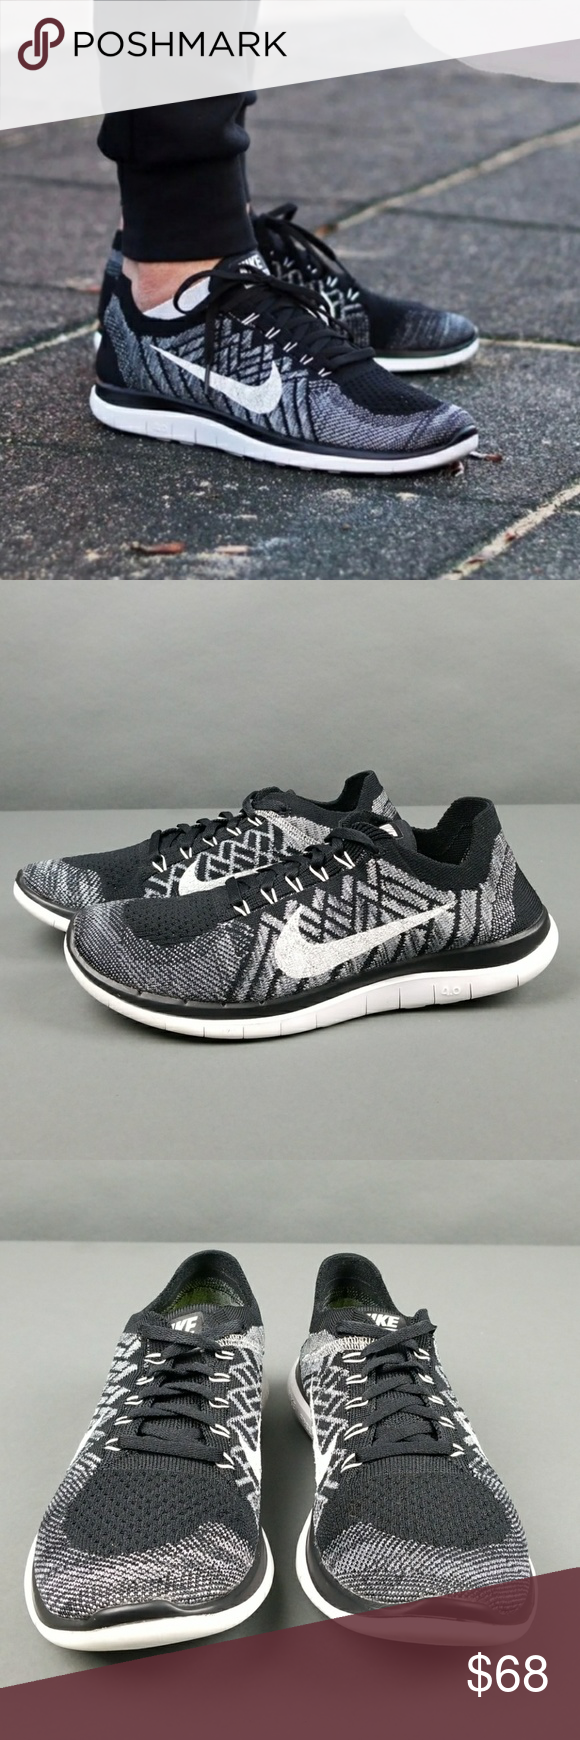 nike free 4.0 flyknit women's running shoes oreo black white